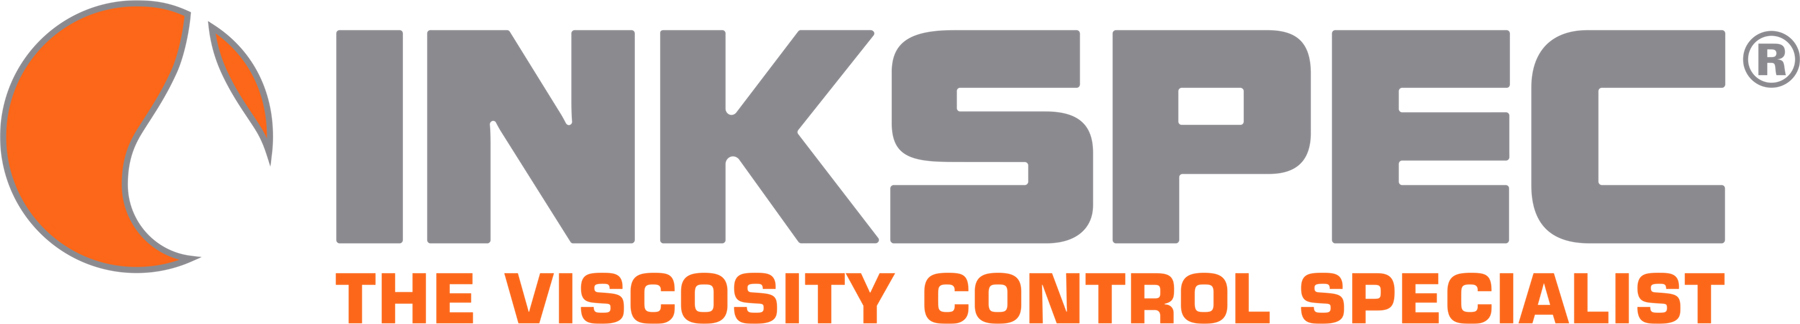 InkSpec Logo - The Viscosity Control Specialist